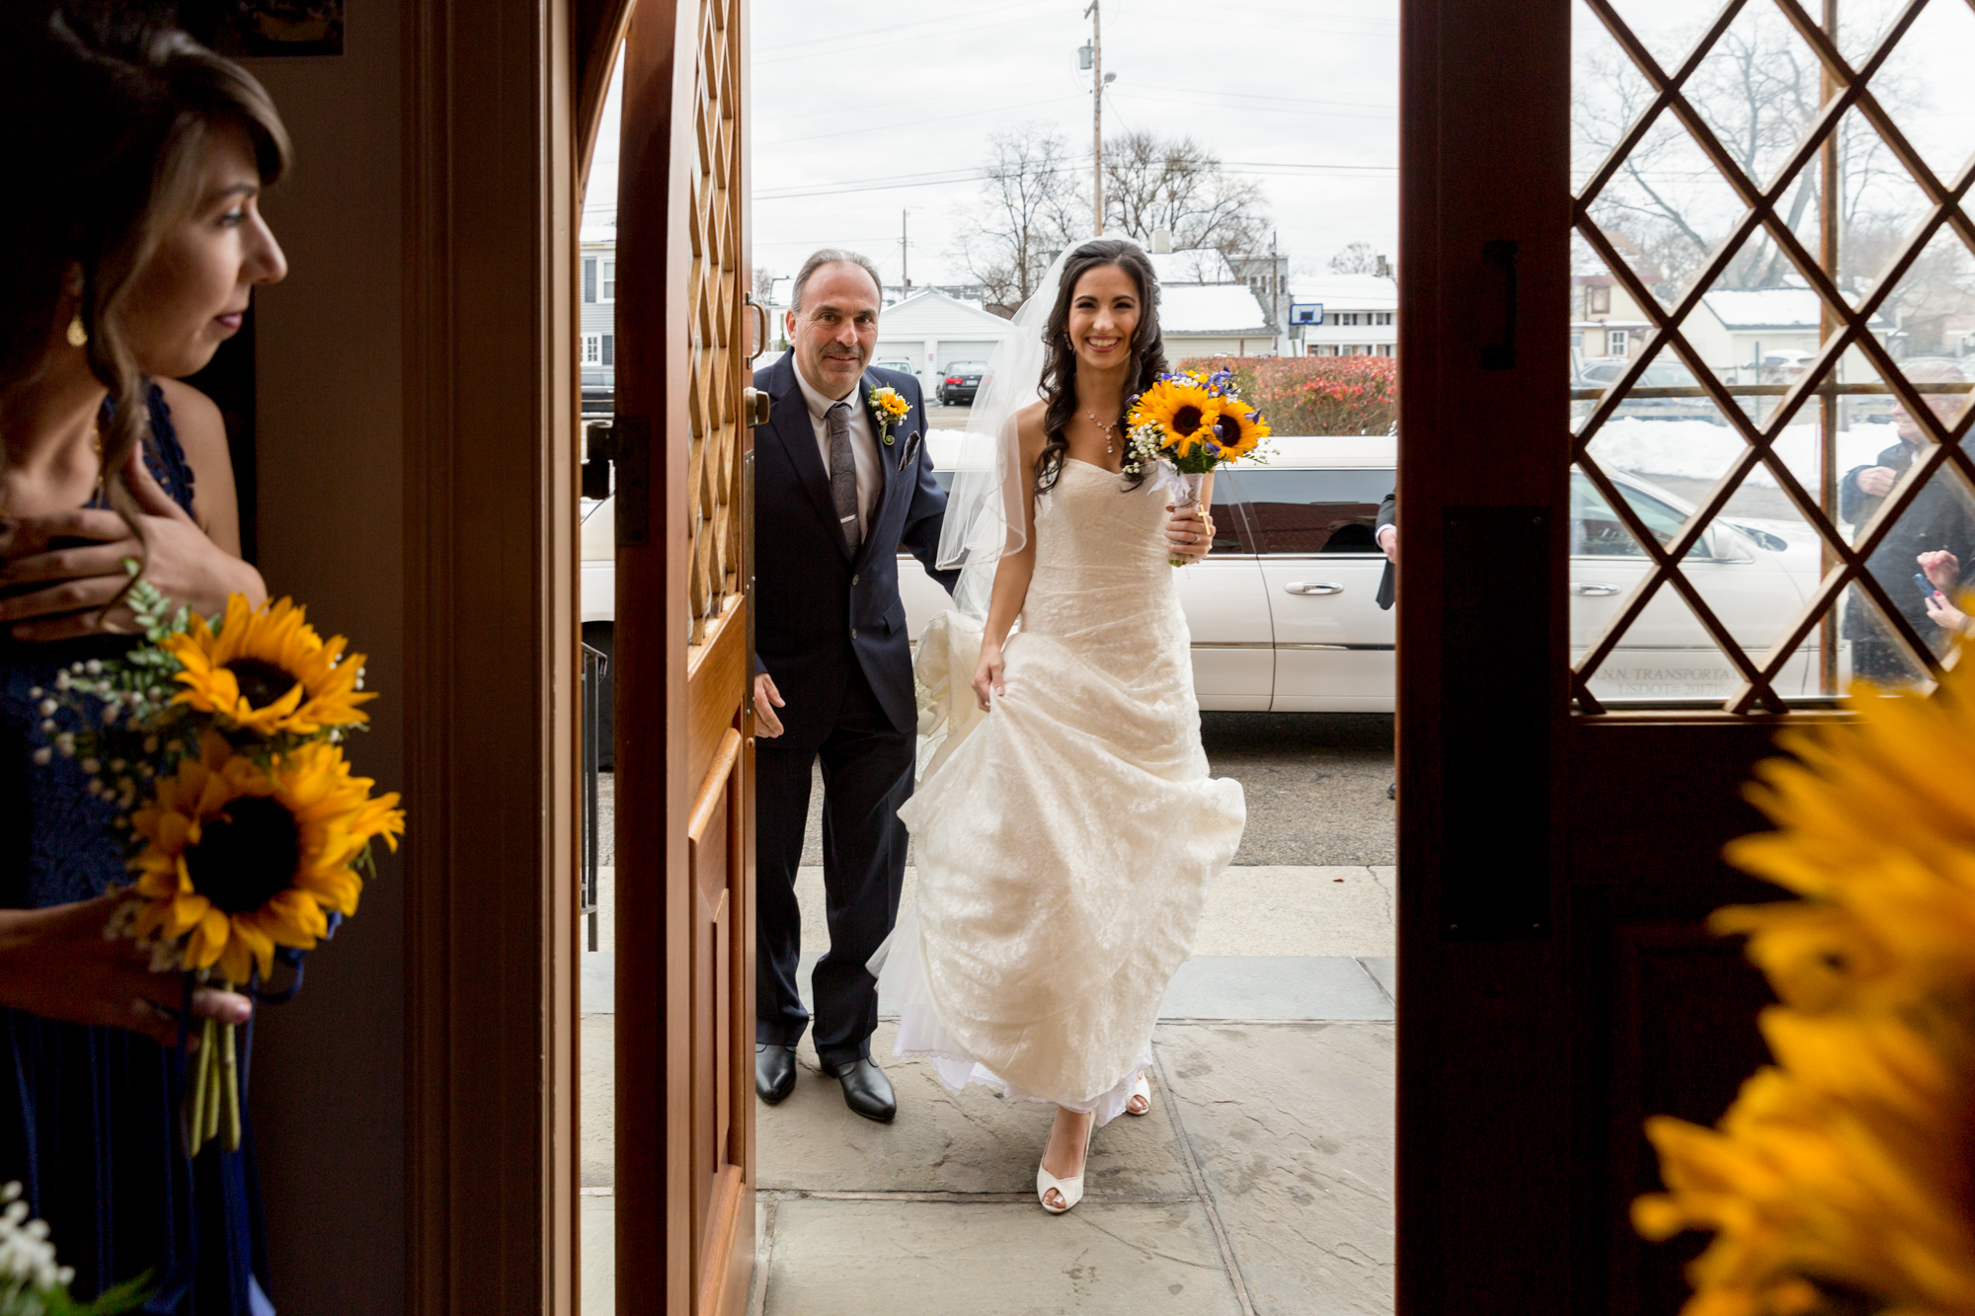 Bre and Dylan - 11/17/18 - St. Mary's in Wappinger's Falls, NY and Old Drover's Inn in Dover, NY